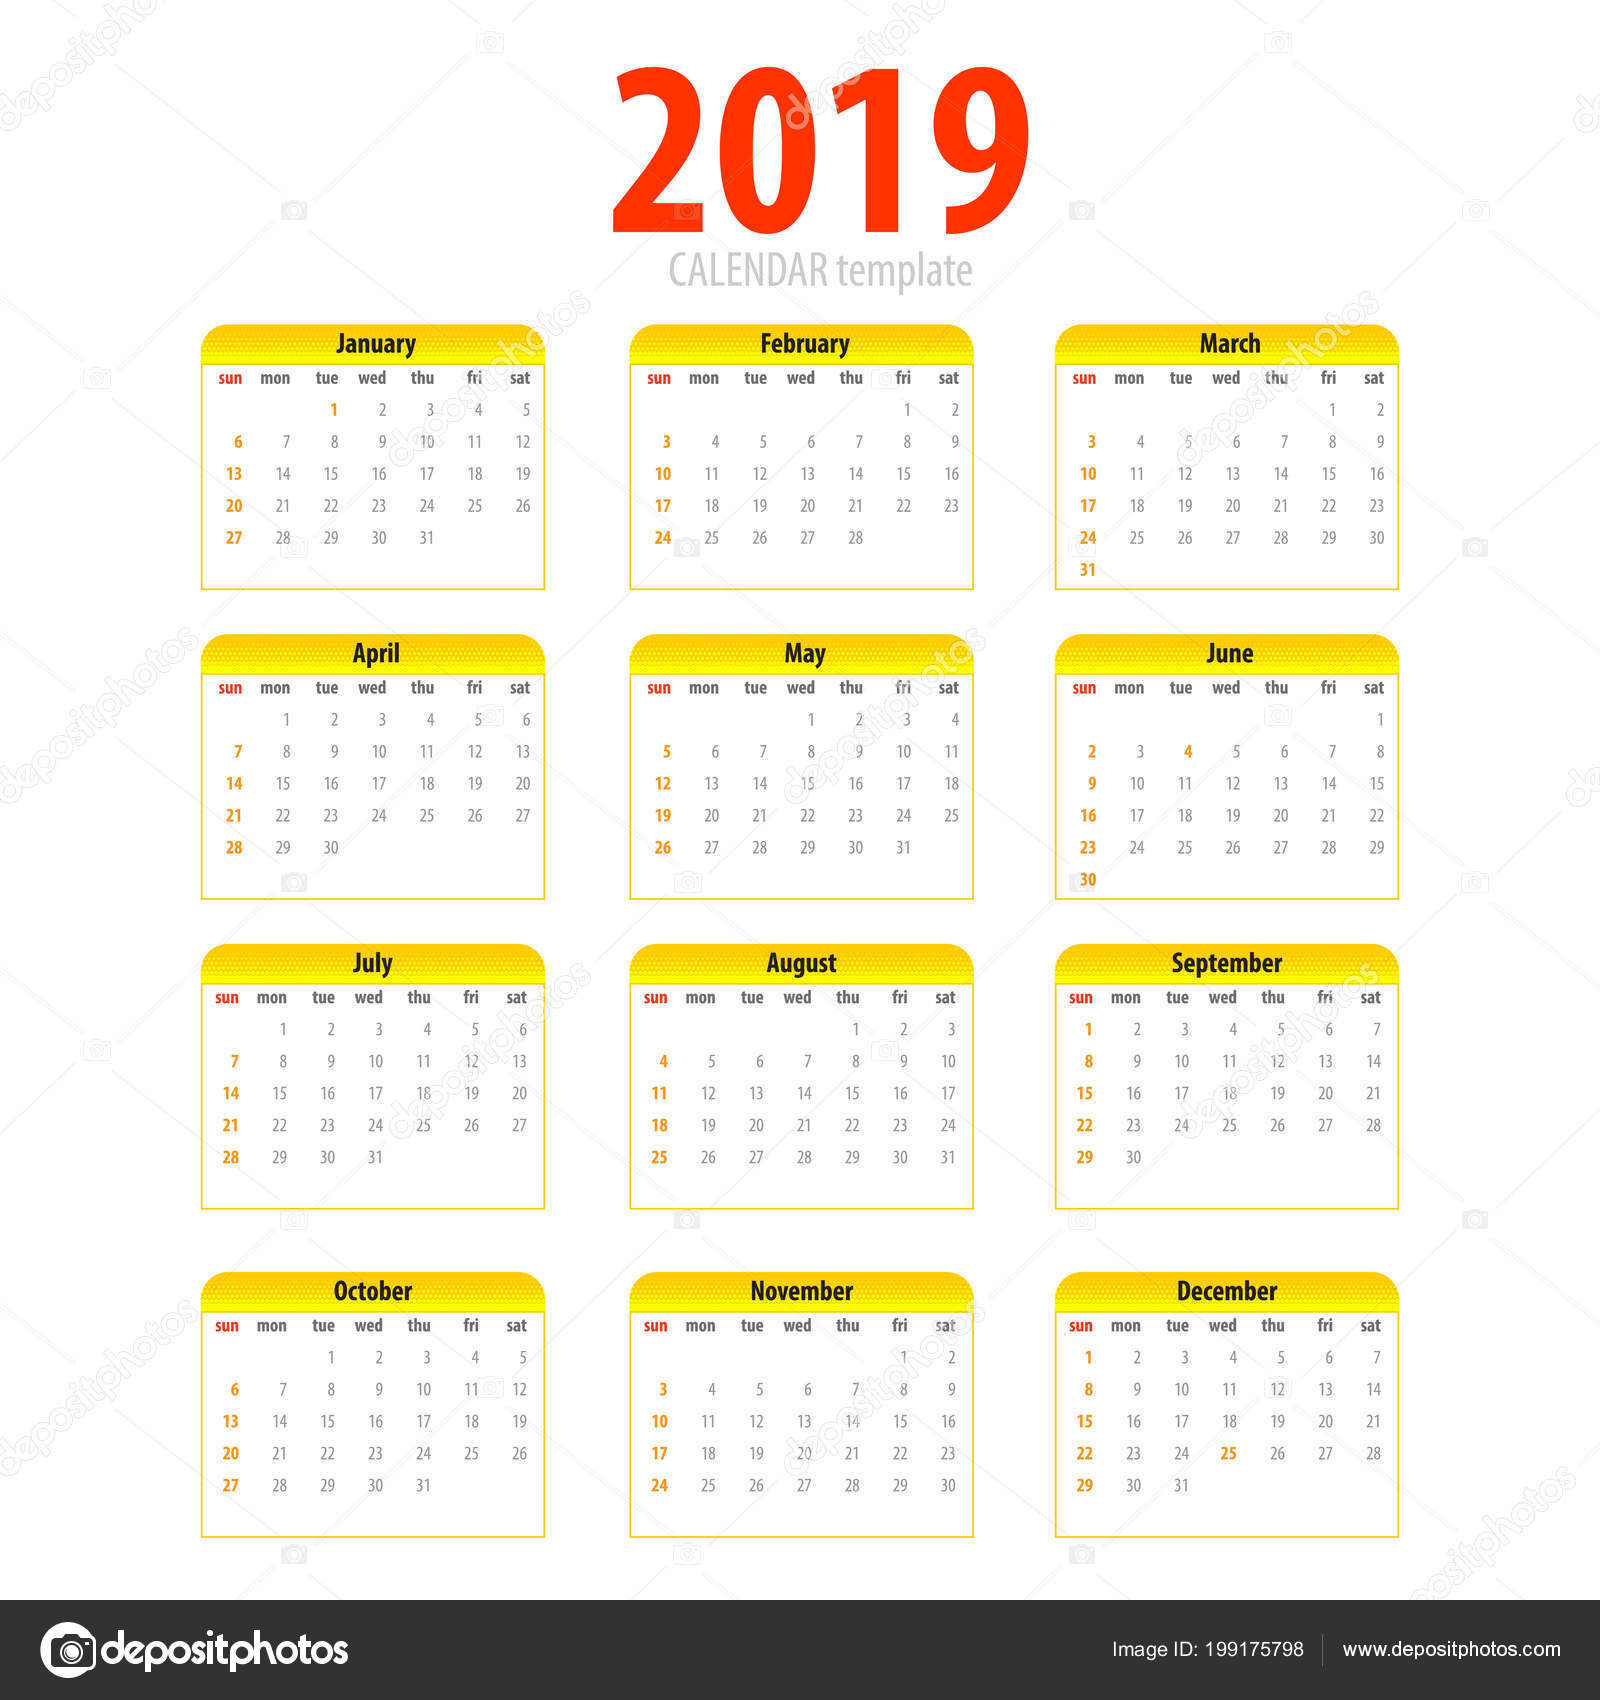 printable calendar 2019 simple template halftone pop art yellow pig colors eastern new year year month week day business planner schedule modern number